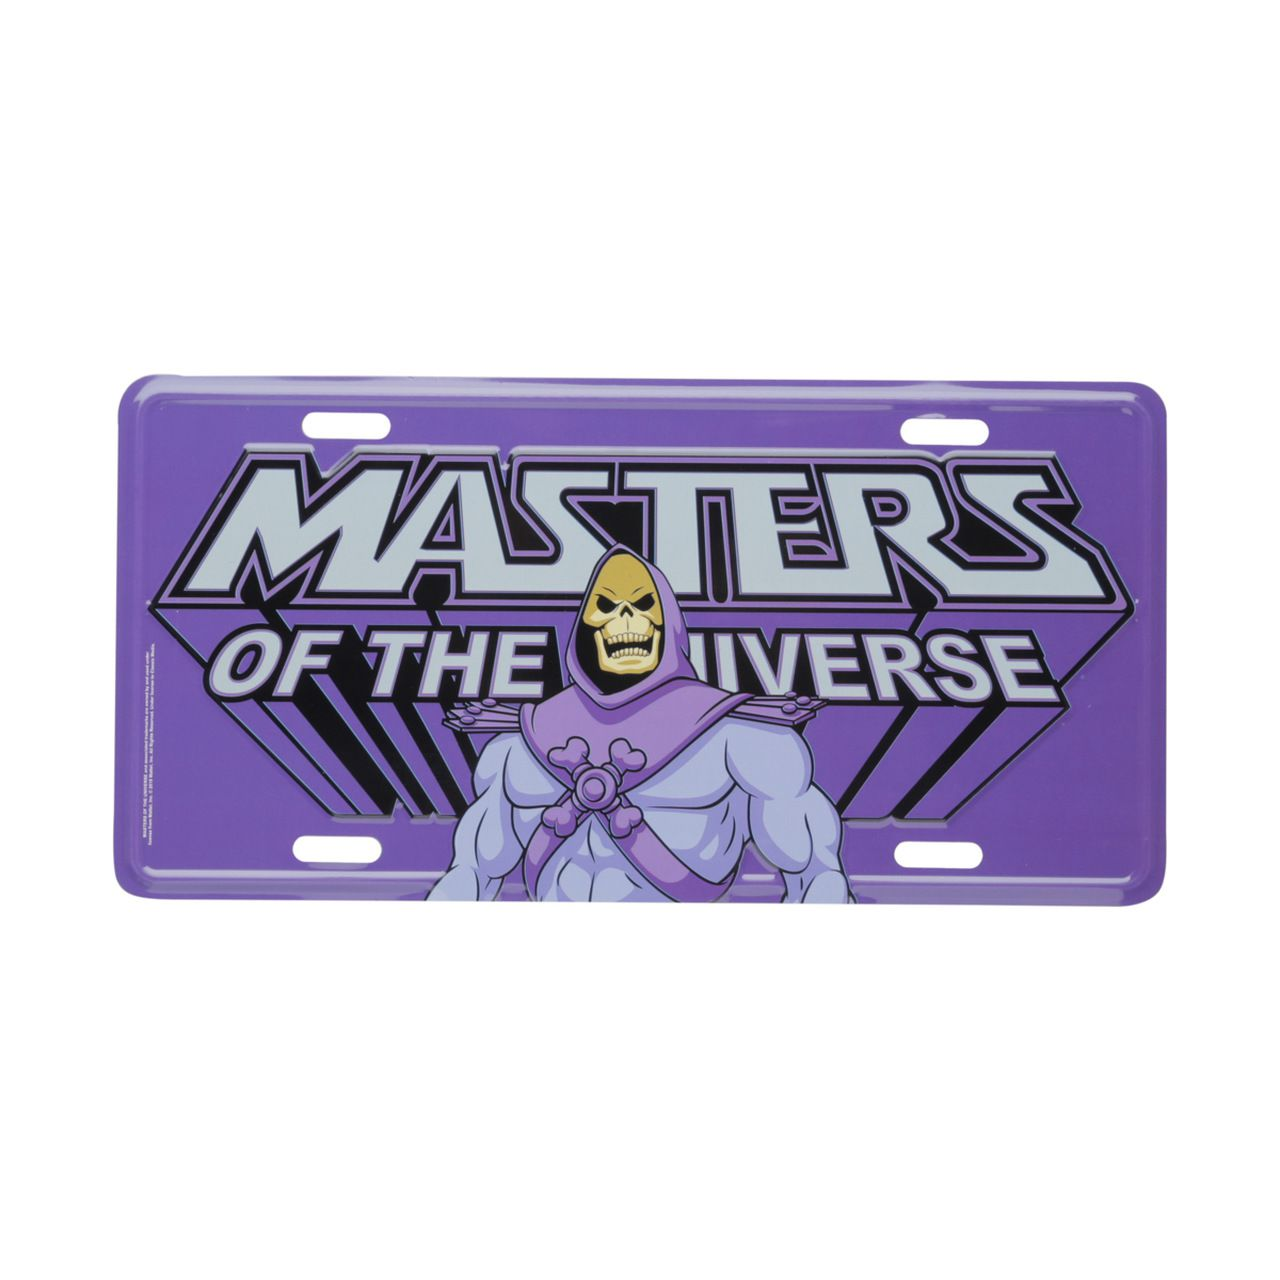 Placa De Carro Decorativa Esqueleto (Skeletor): Mestres do Universo (Masters of the Universe)